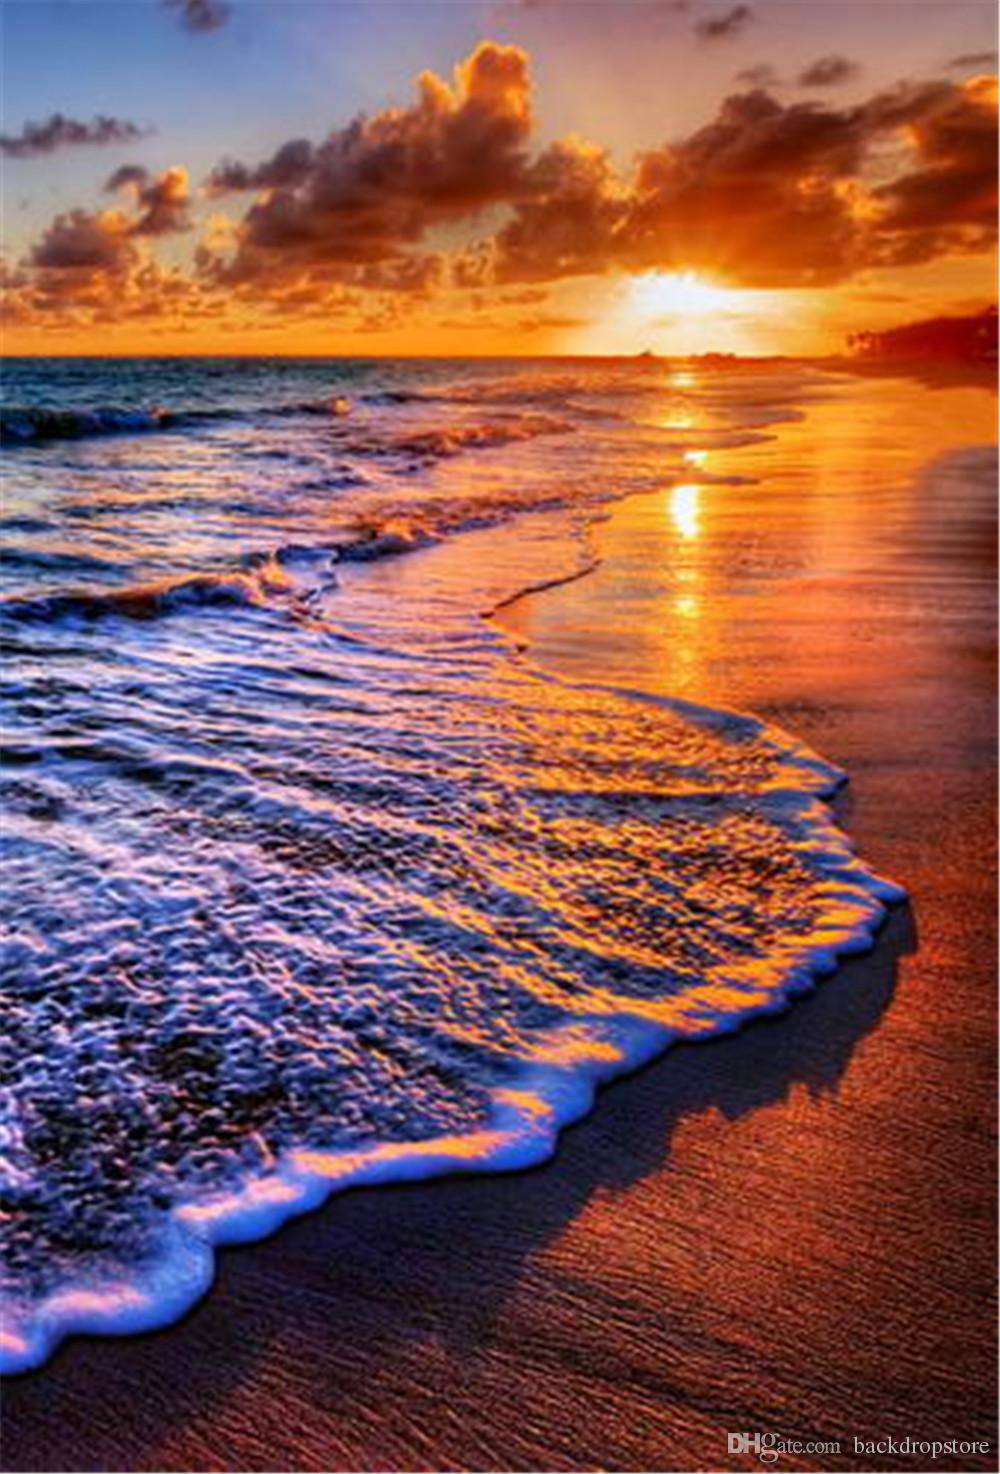 2019 Beautiful Sunset Scenery Beach Photography Backdrops ... - photo#48